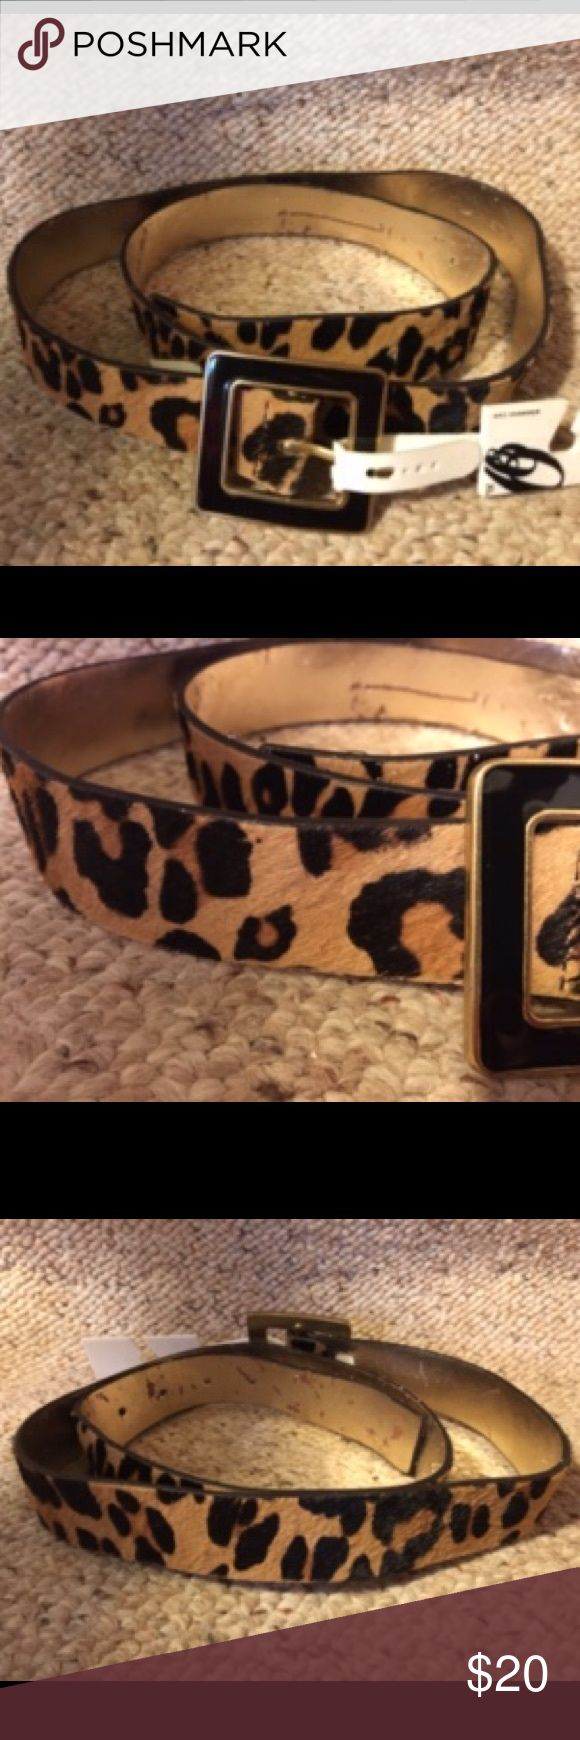 "Nine West Animal Print Calf Fur Belt Animal print calf fur belt with black with goldtone trim buckle. XL. 36"" to the first belt hole. 45"" long. NWT. Matches the Taryn Rose shoes I posted perfectly. Nine West Accessories Belts"